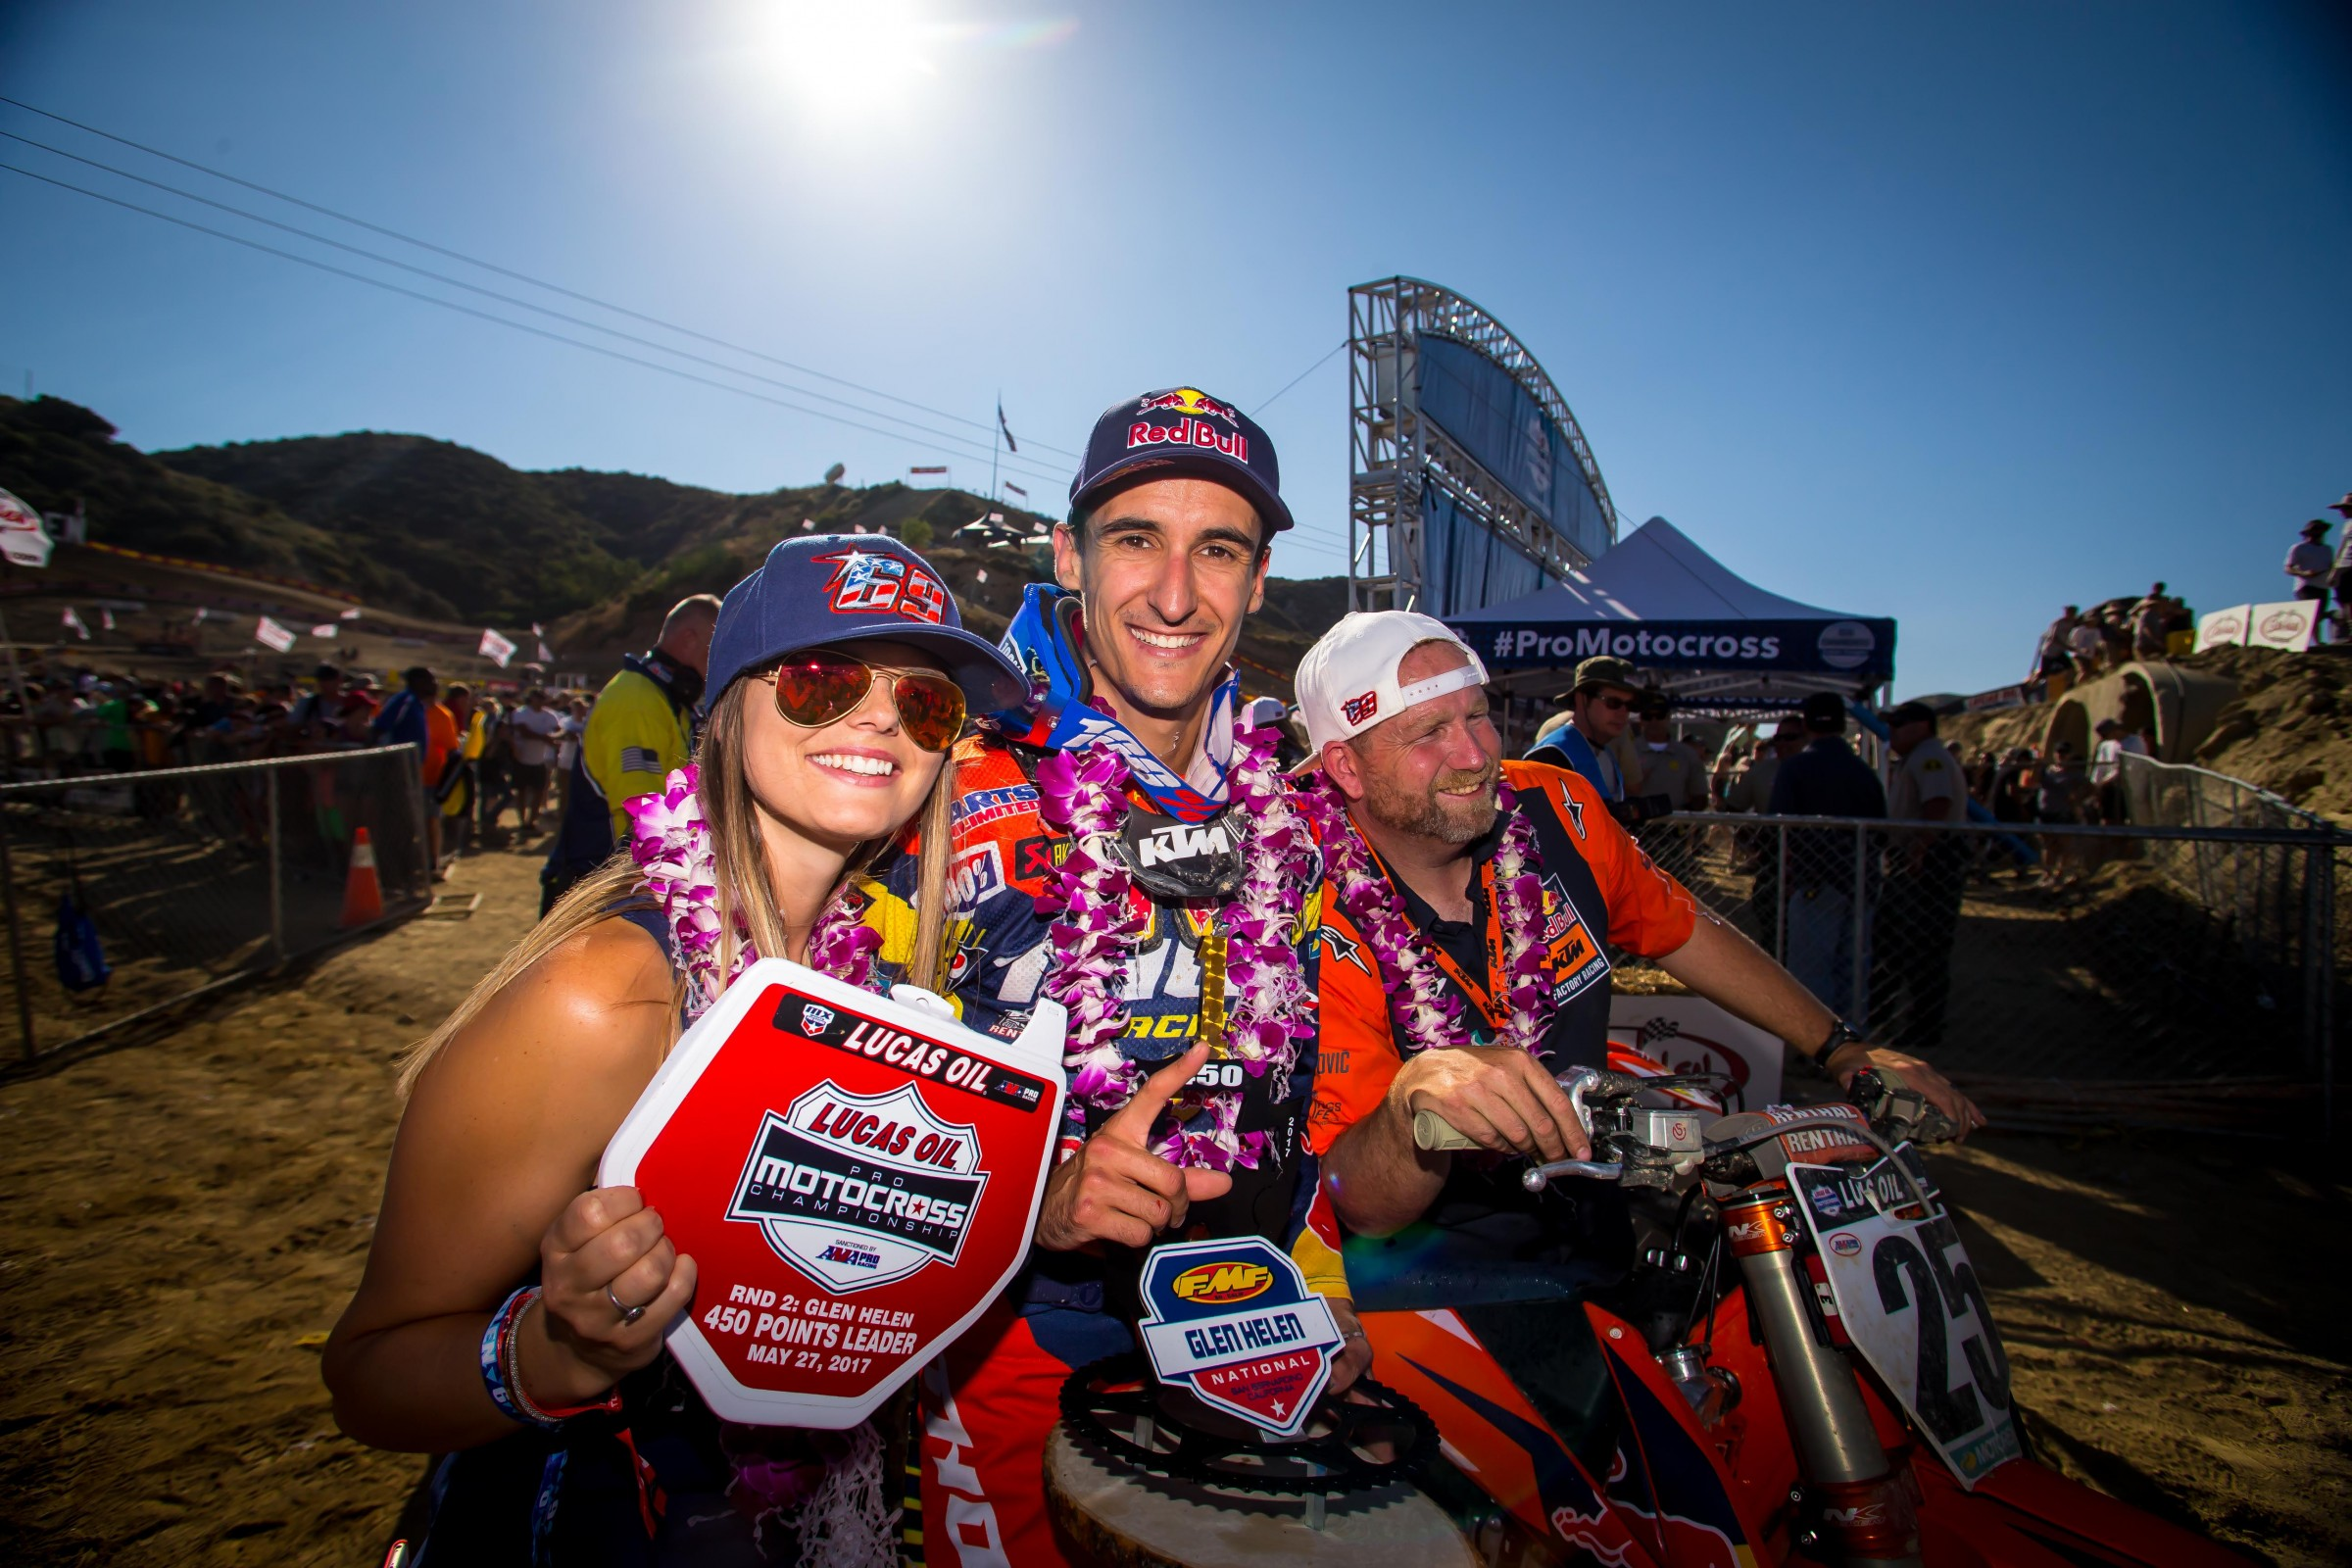 Musquin is surrounded by his wife, Mathilde, and his mechanic, Frankie Latham, after winning his first 450MX National.